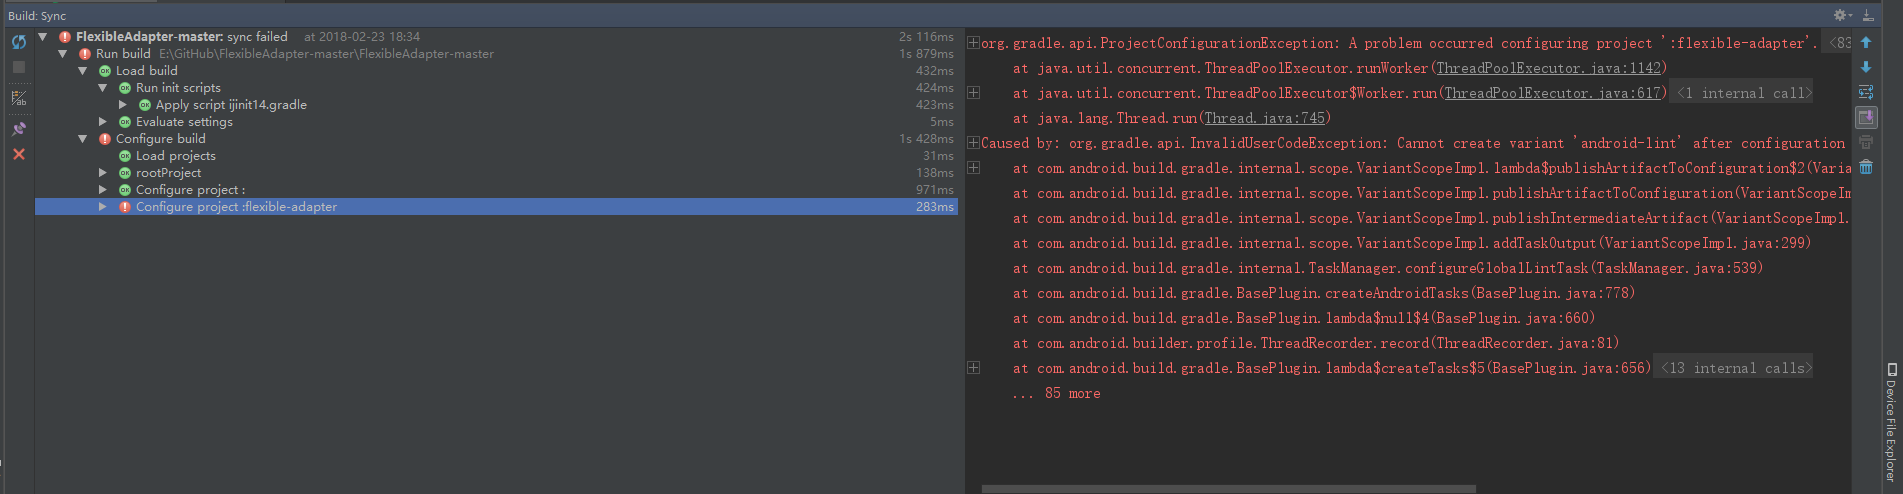 FlexibleAdapter can't import new android studio · Issue #549